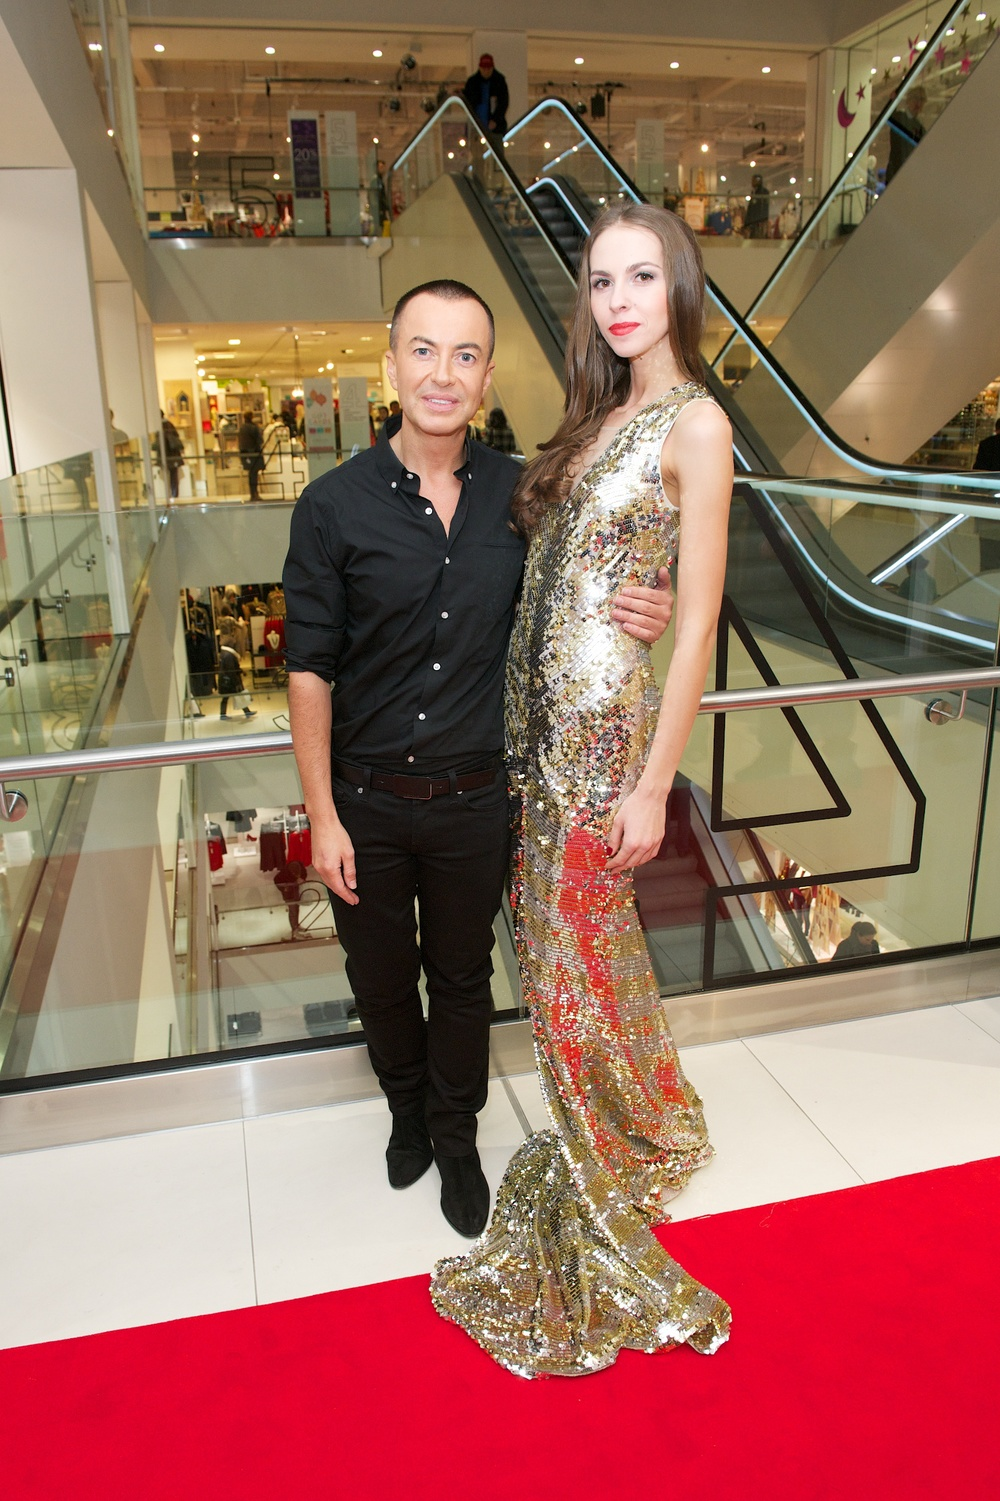 JULIEN MACDONALD STEPPED OUT ONTO THE RED CARPET FOR THE GLAMOROUS CHRISTMAS DEBENHAMS STORE LAUNCH. MODELS AND STAFF TOOK TO THE RUNWAY ILLUSTRATING DEBENHAMS' PLEDGE TO SATISFY THEIR CUSTOMER'S DESIRE TO SEE MORE REALISTIC IMAGES IN FASHION.